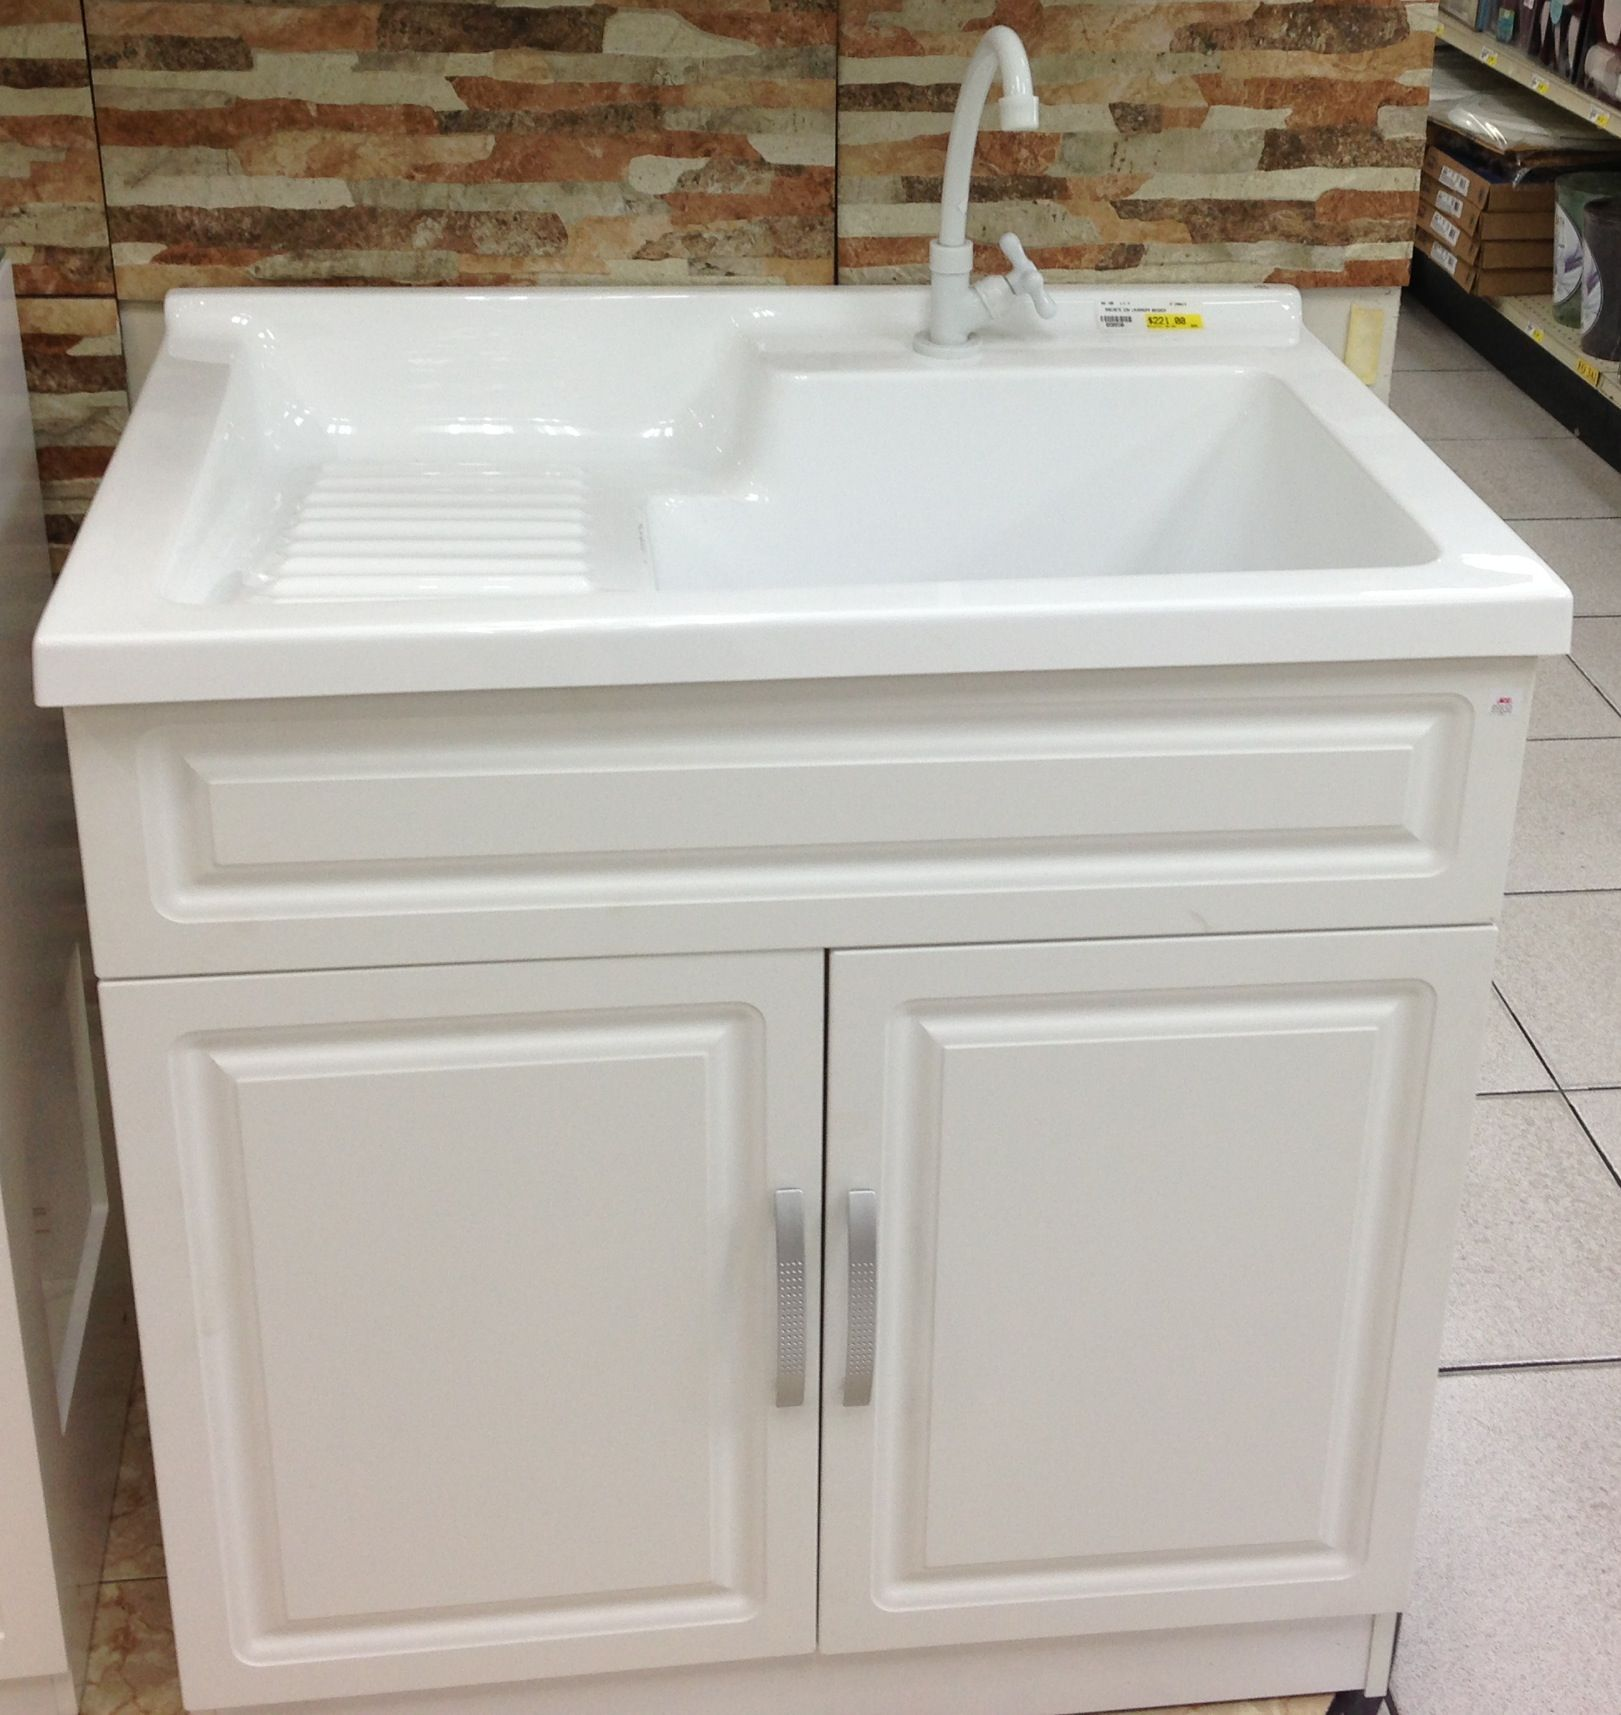 Functional Laundry Sink. Corstone Self Rimming At Lowes For $145